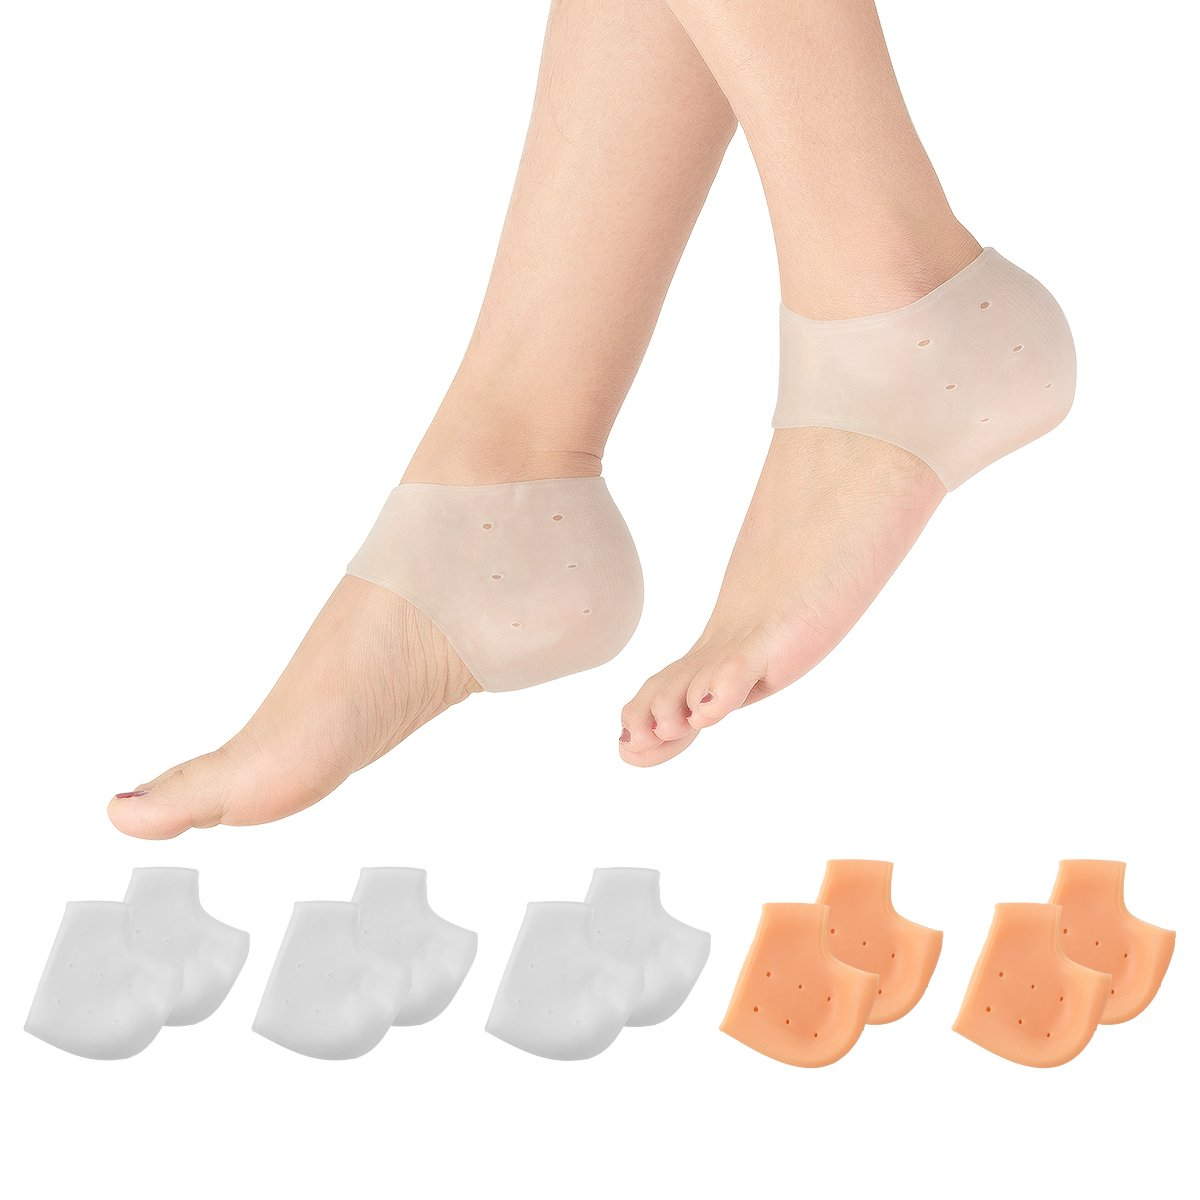 Madholly 5 Pairs Gel Heel Sleeves, Breathable Silicone Heel Socks Protectors to Repair Dry Cracked Heel and Reduce Pains of Plantar Fasciitis, Achilles Tendonitis Tendon, Heel Spurs, Sore Heel by MADHOLLY